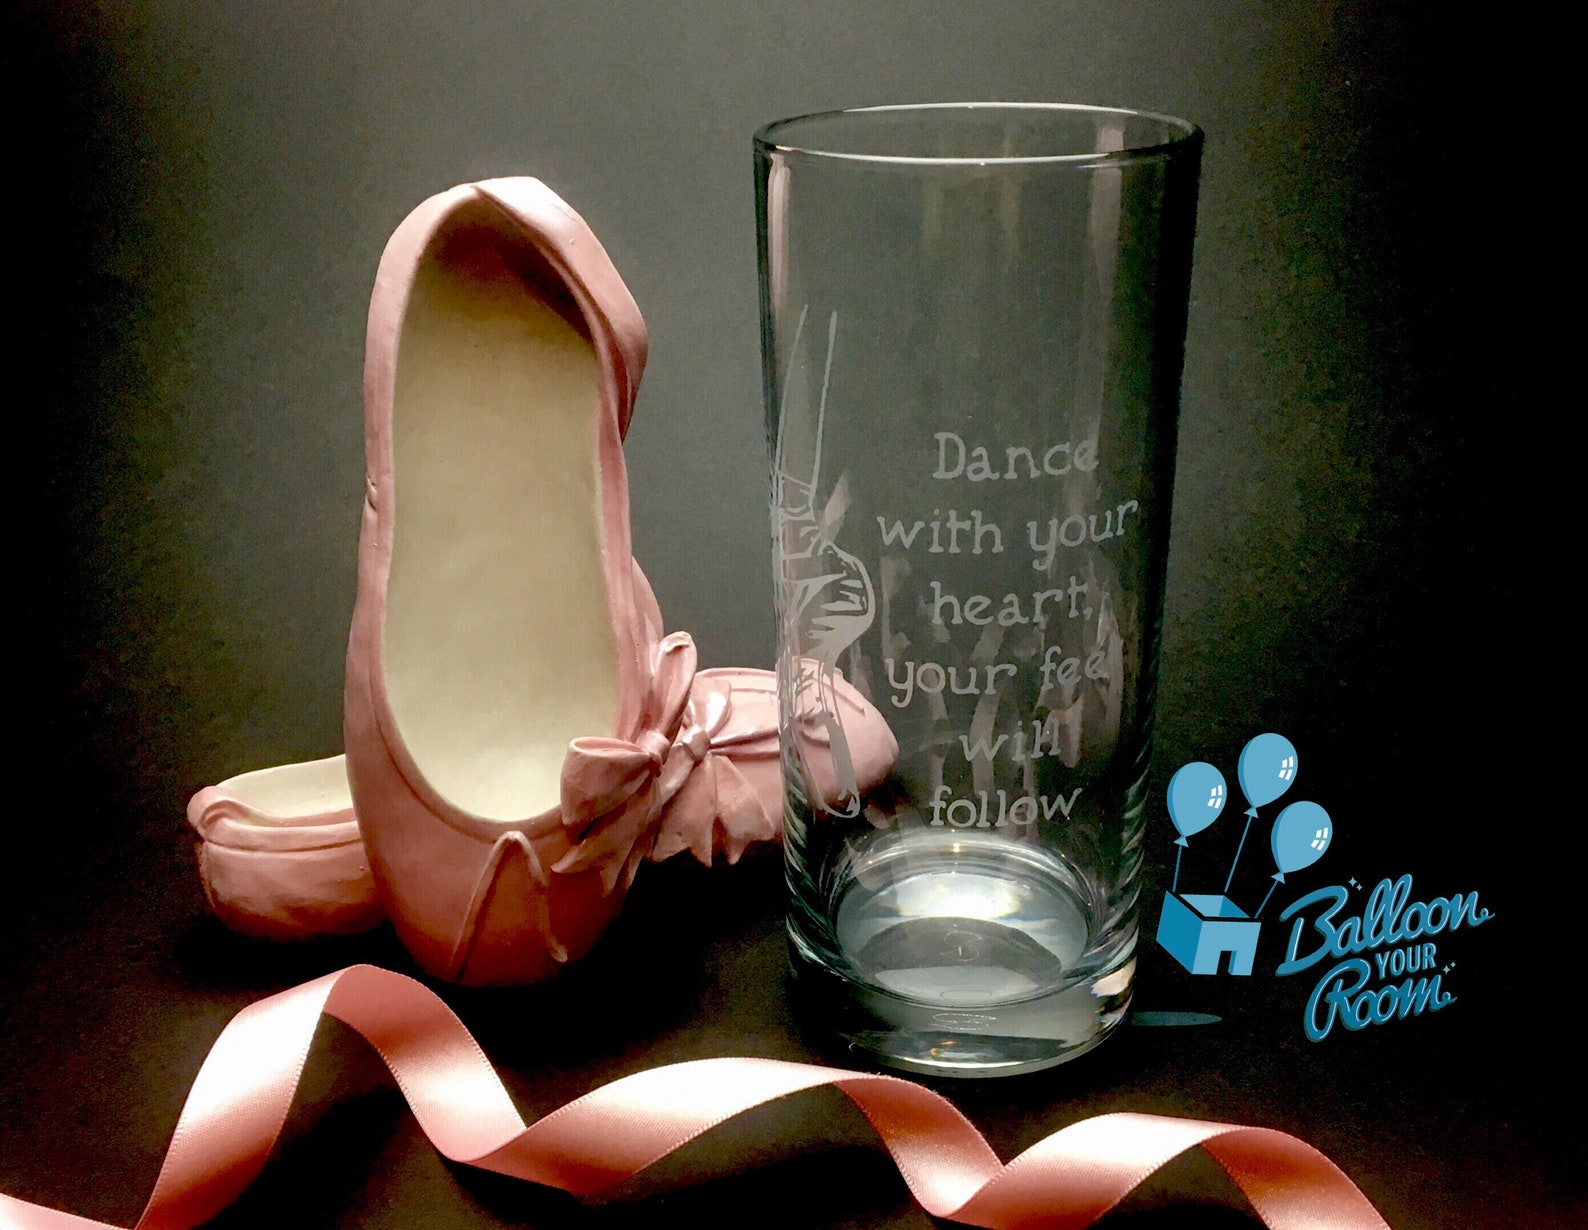 ballet shoes glass - dance with your heart, your feet will follow - engraved hi-ball glass